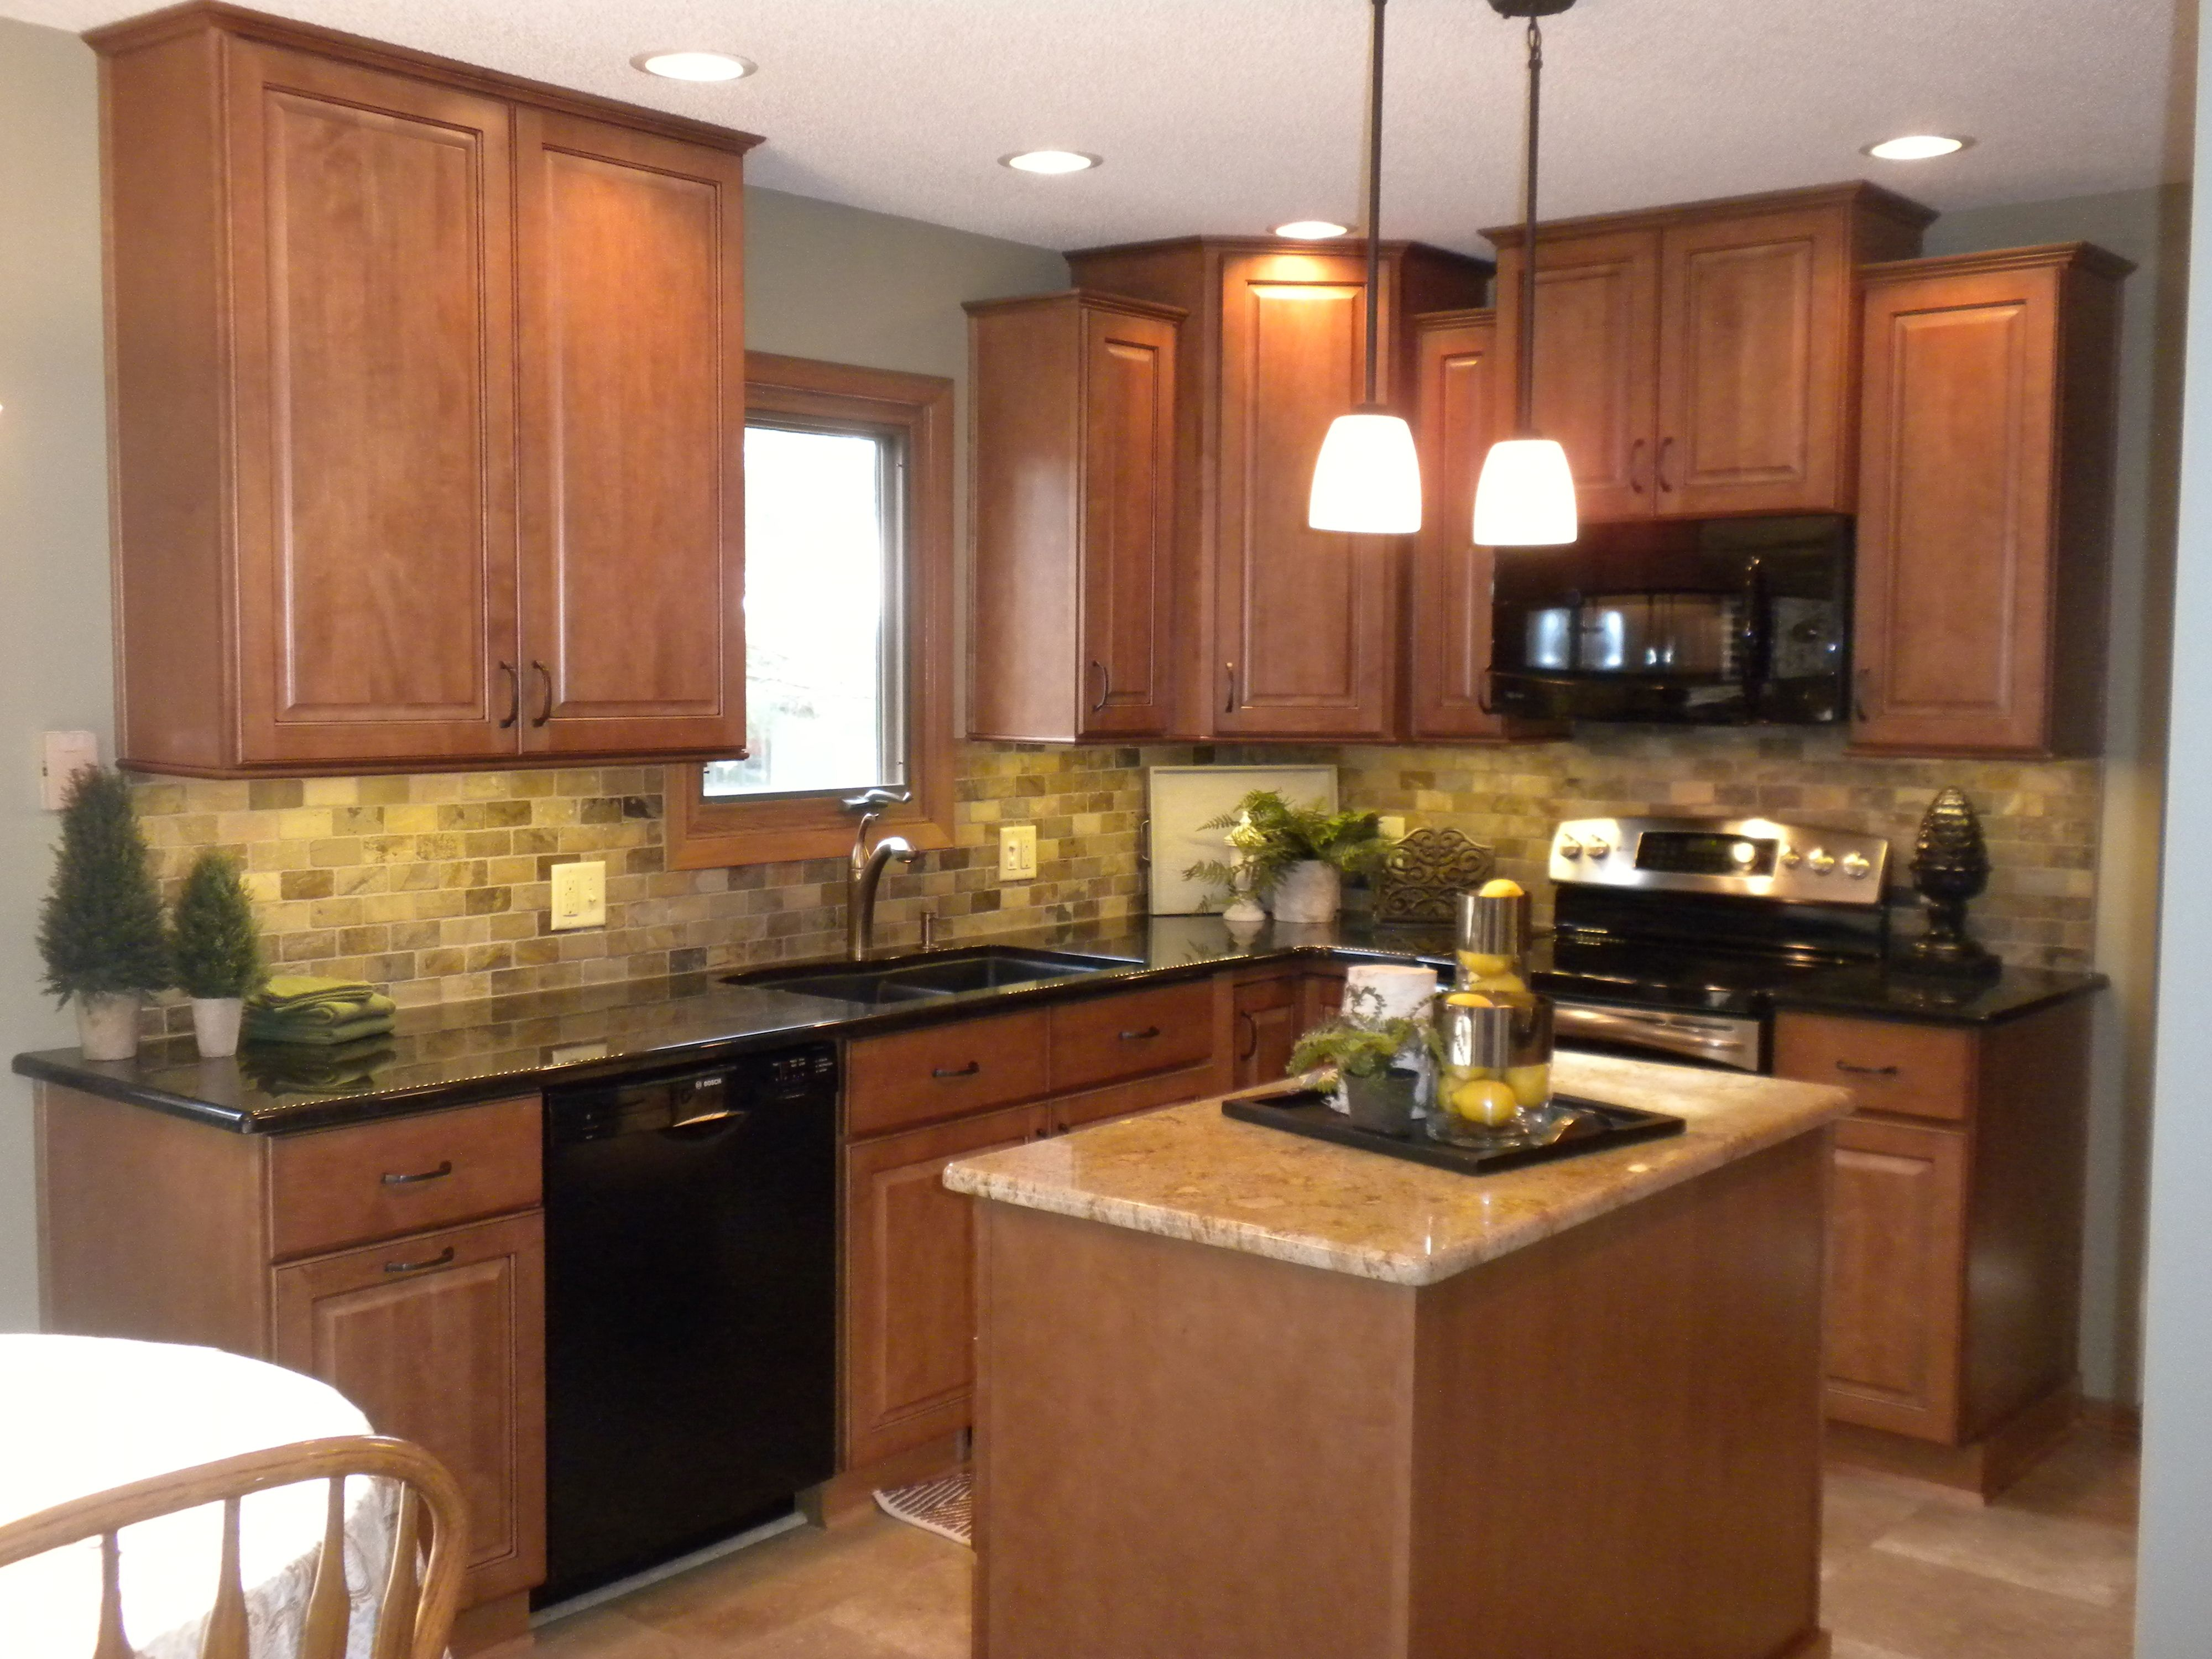 Pictures Of Cambria Countertops With Honey Oak Cabinets Project